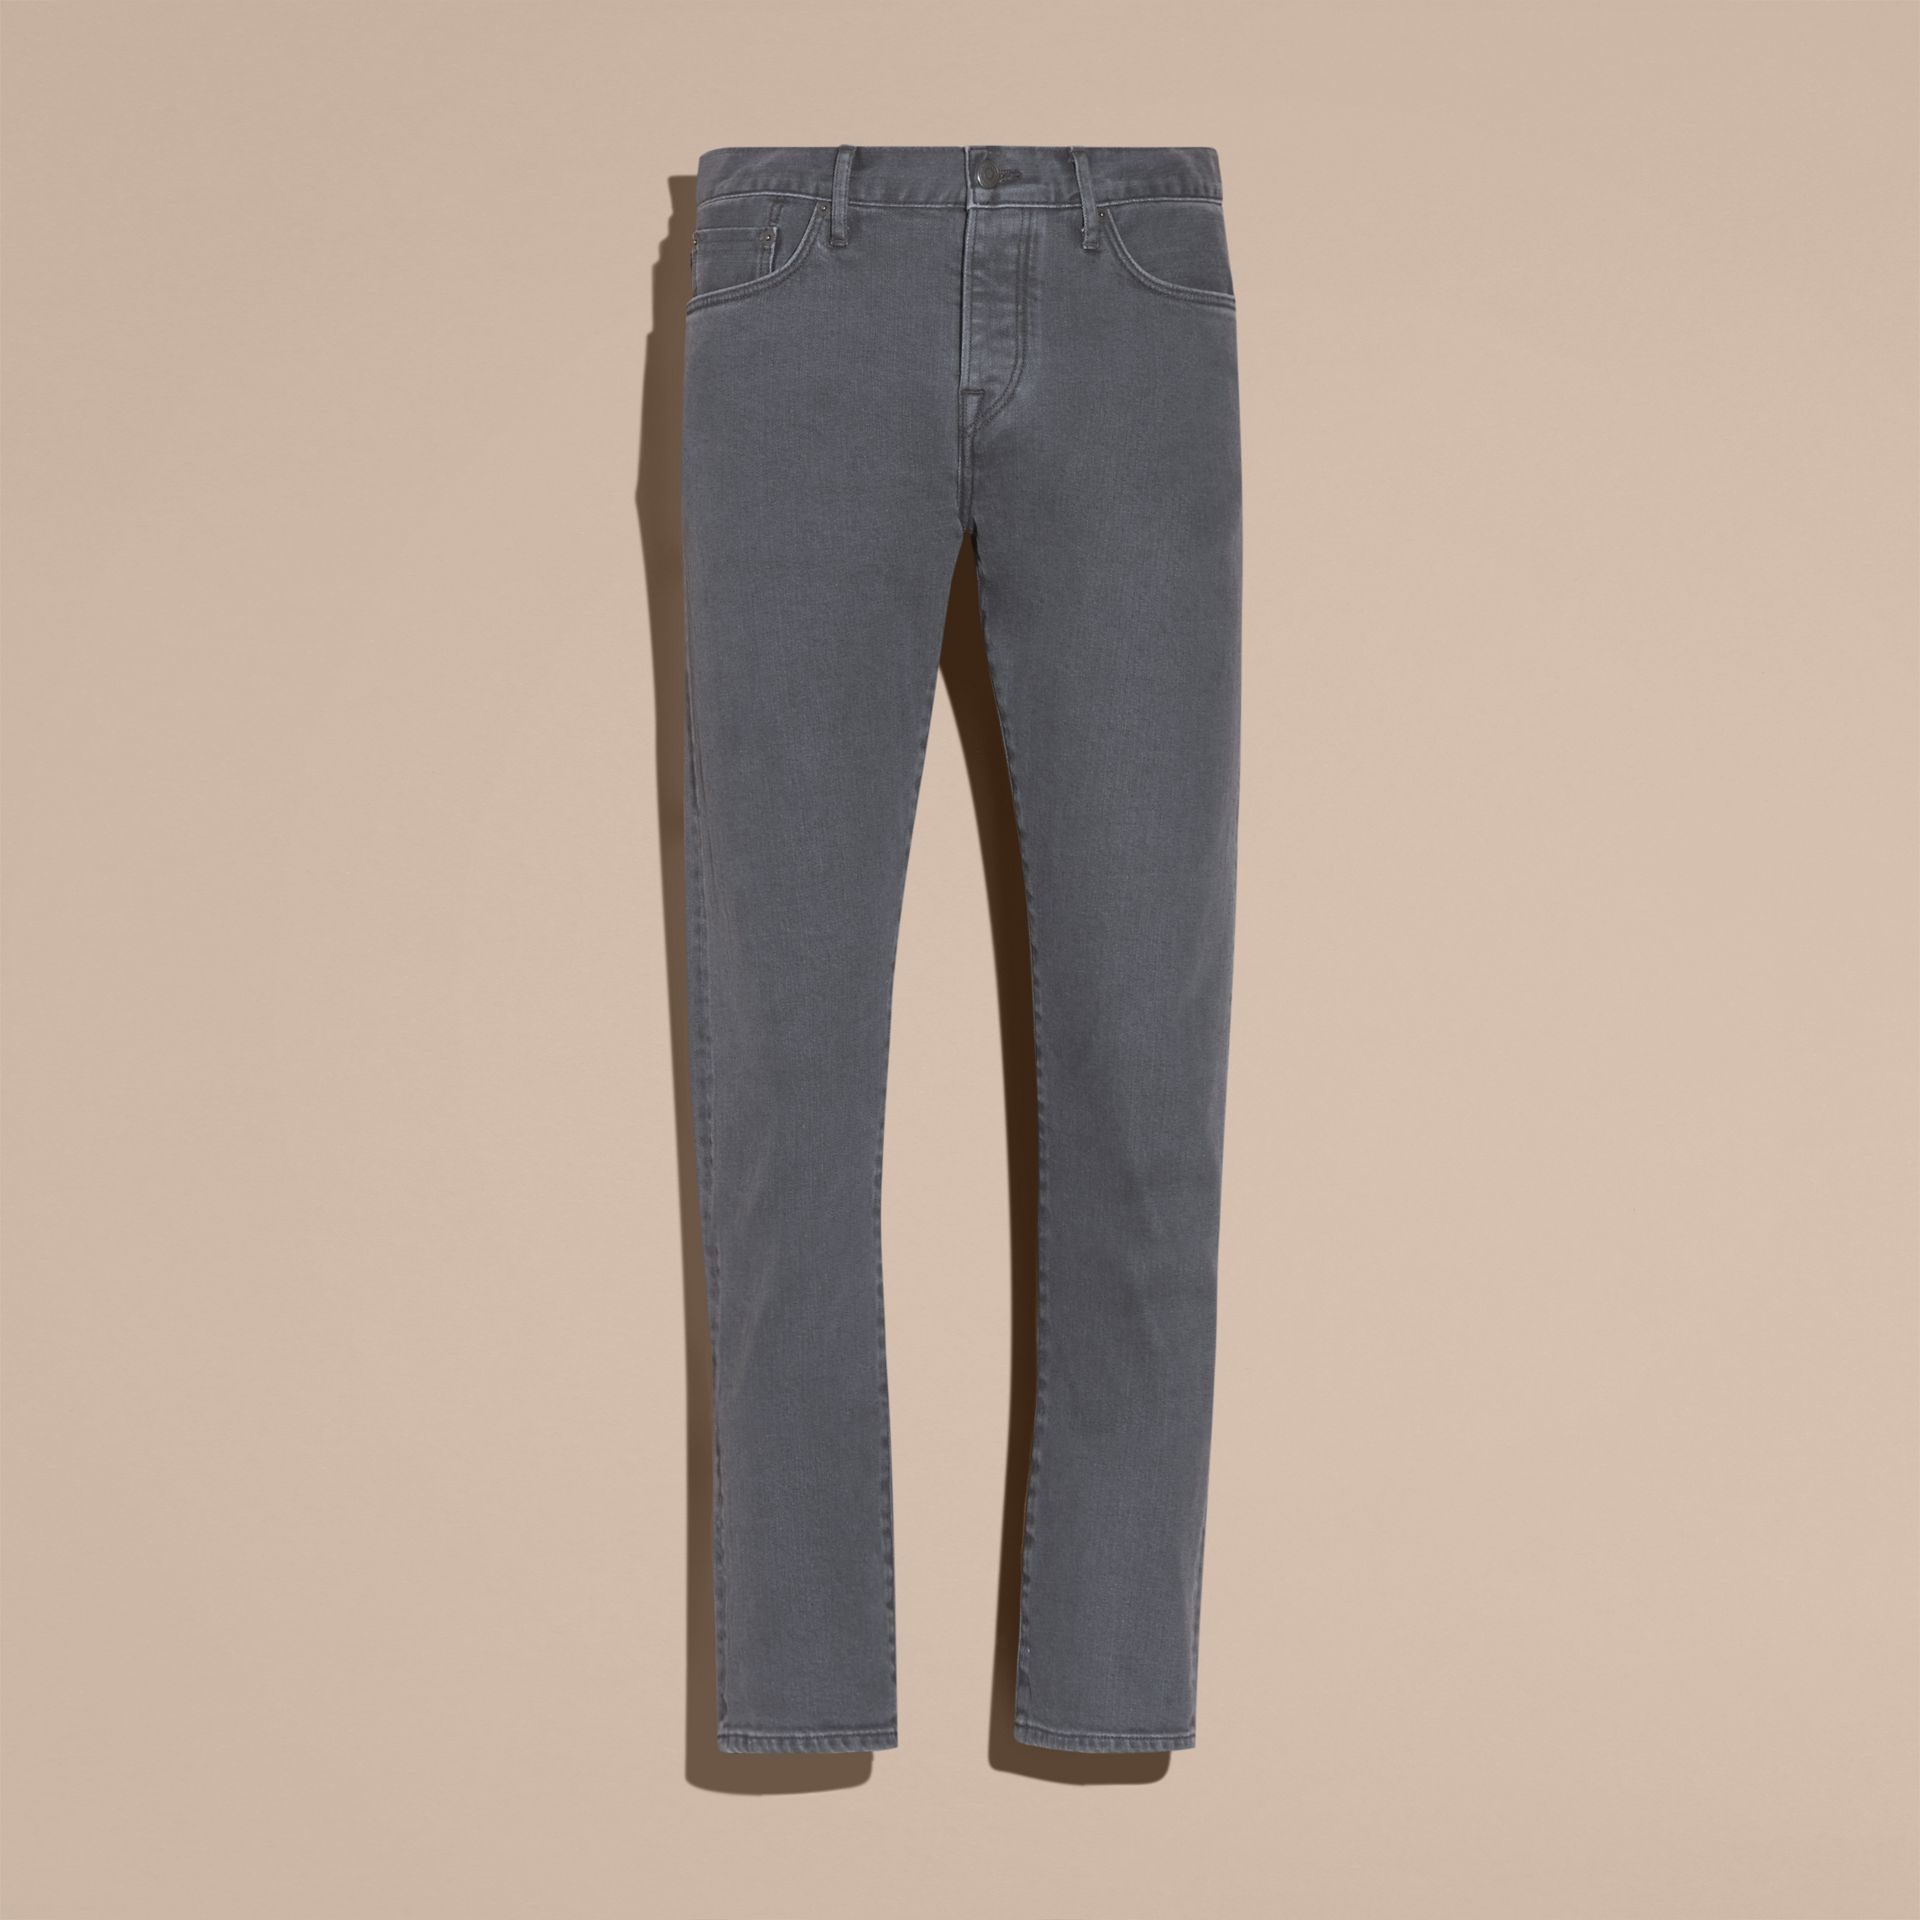 Jean de coupe droite en denim selvedge japonais - Homme | Burberry - photo de la galerie 4